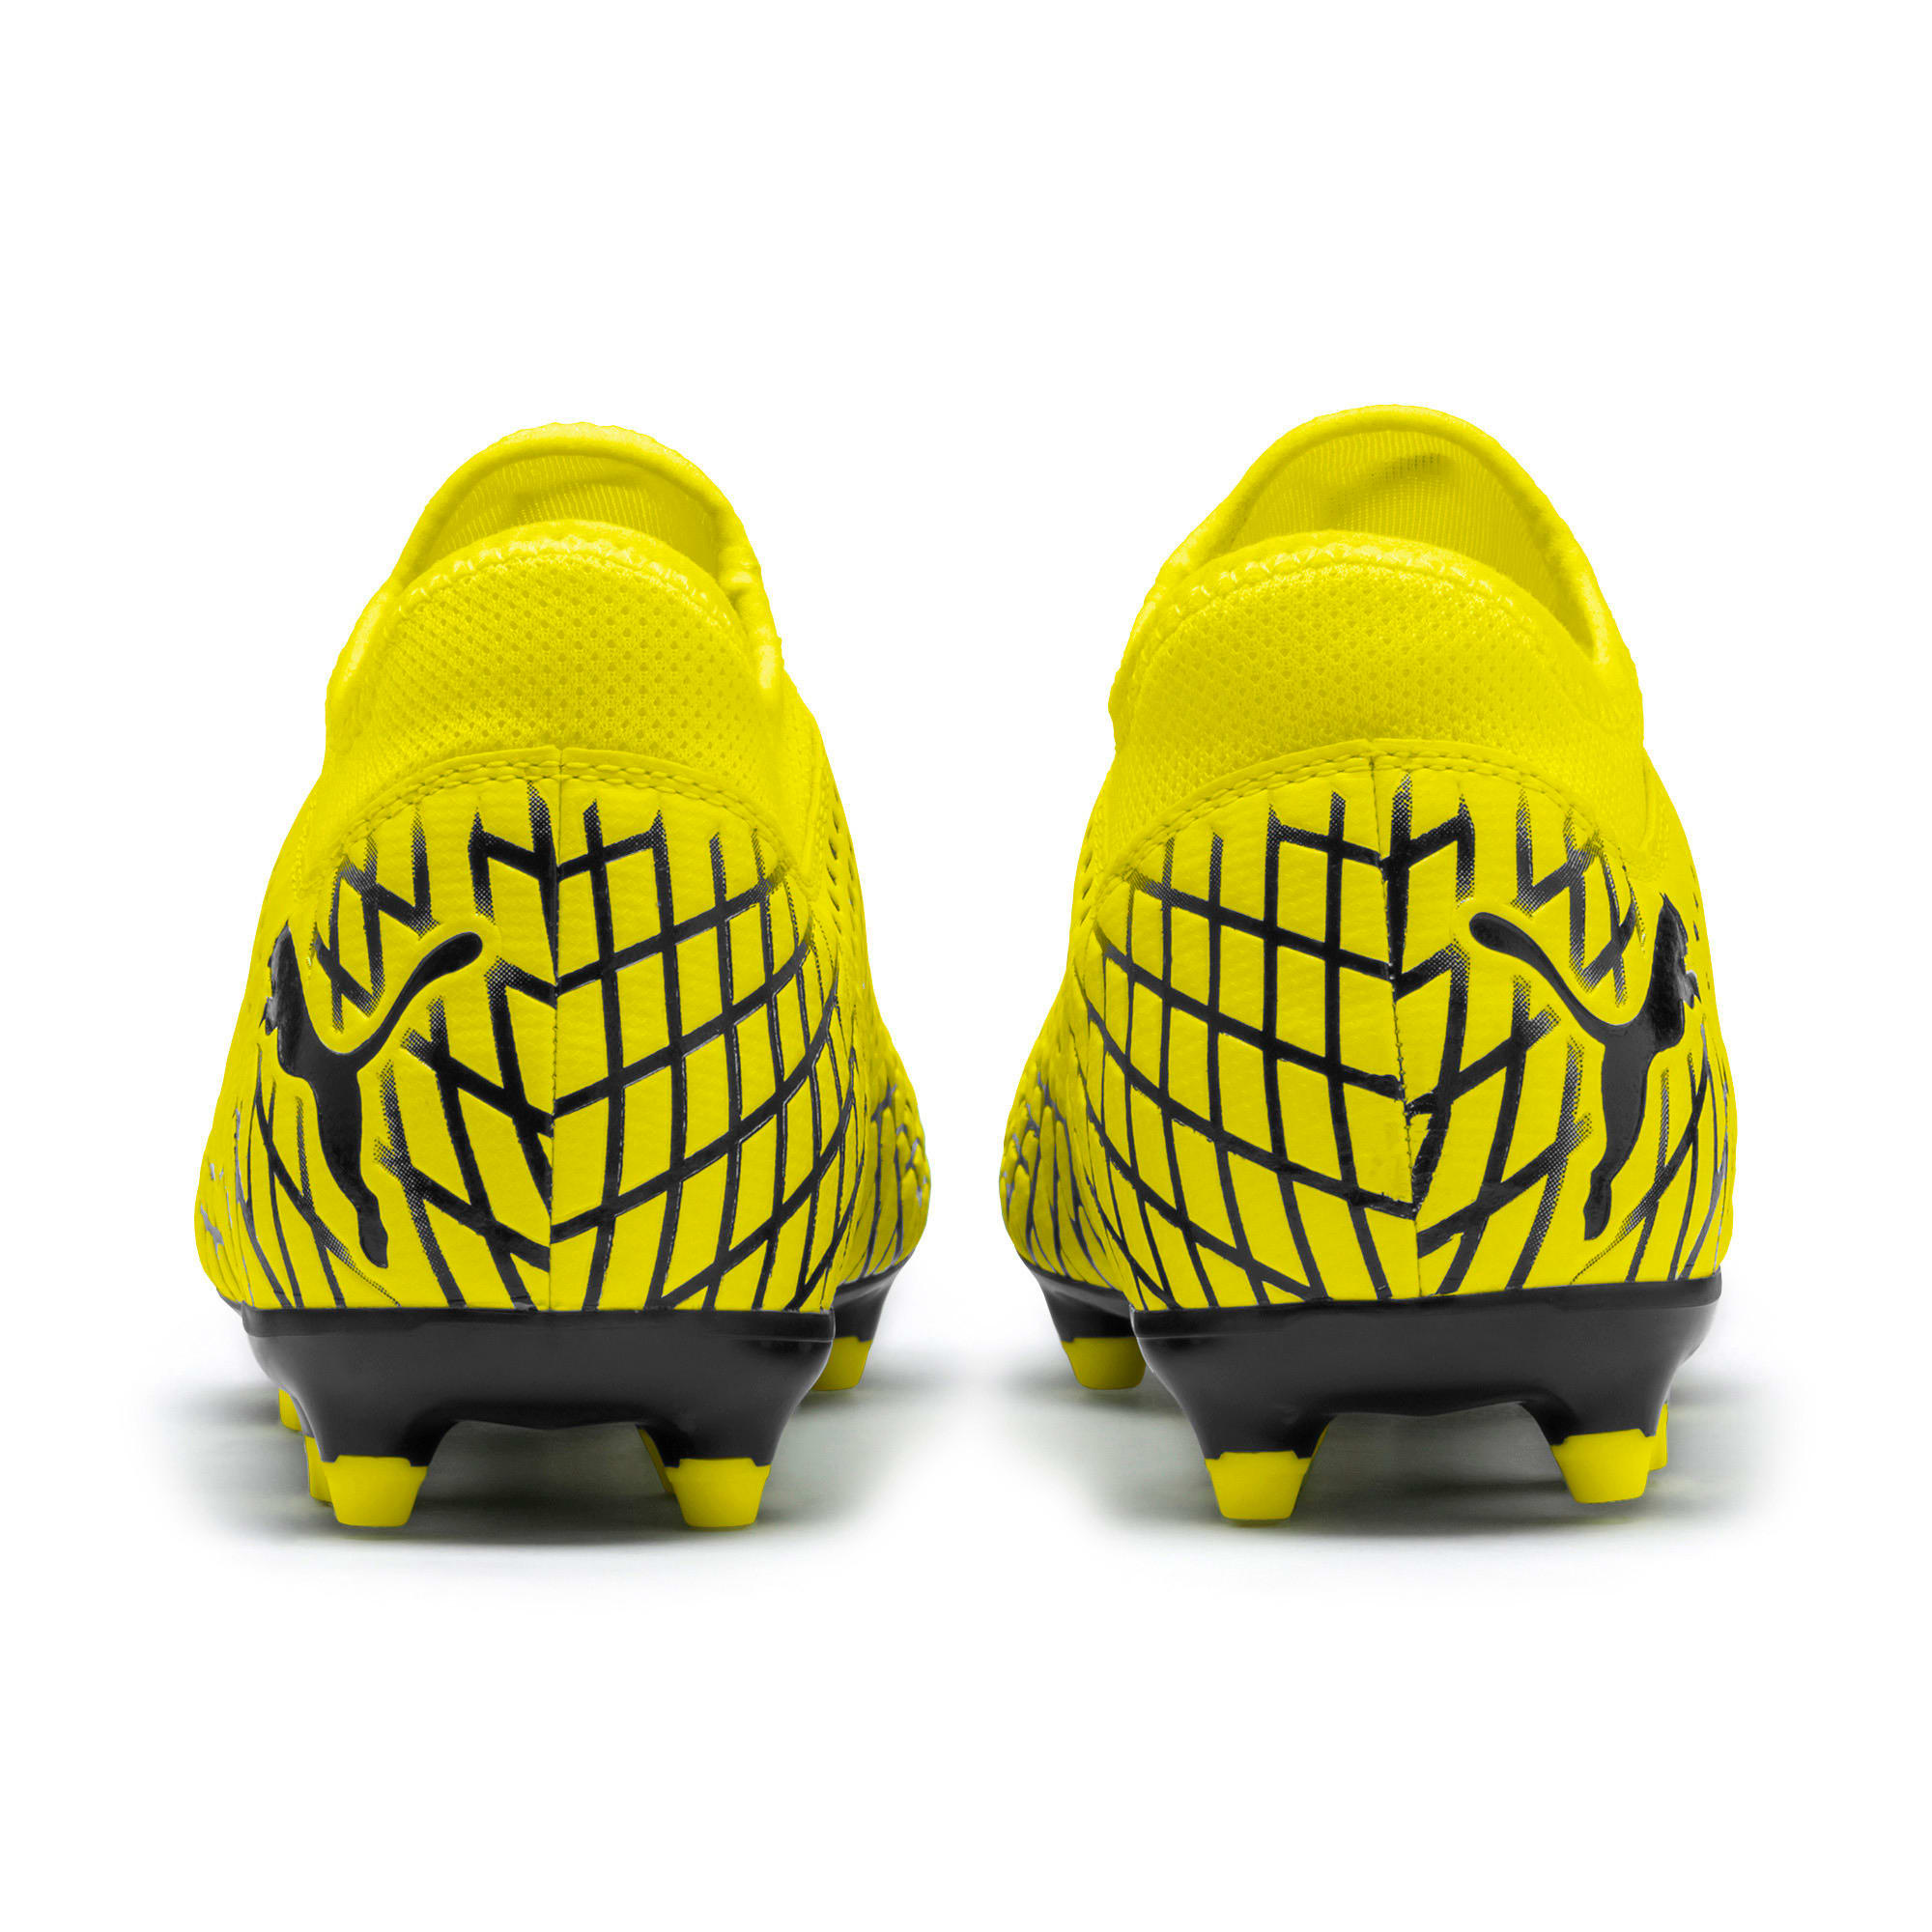 Thumbnail 4 of FUTURE 4.4 FG/AG Men's Football Boots, Yellow Alert-Puma Black, medium